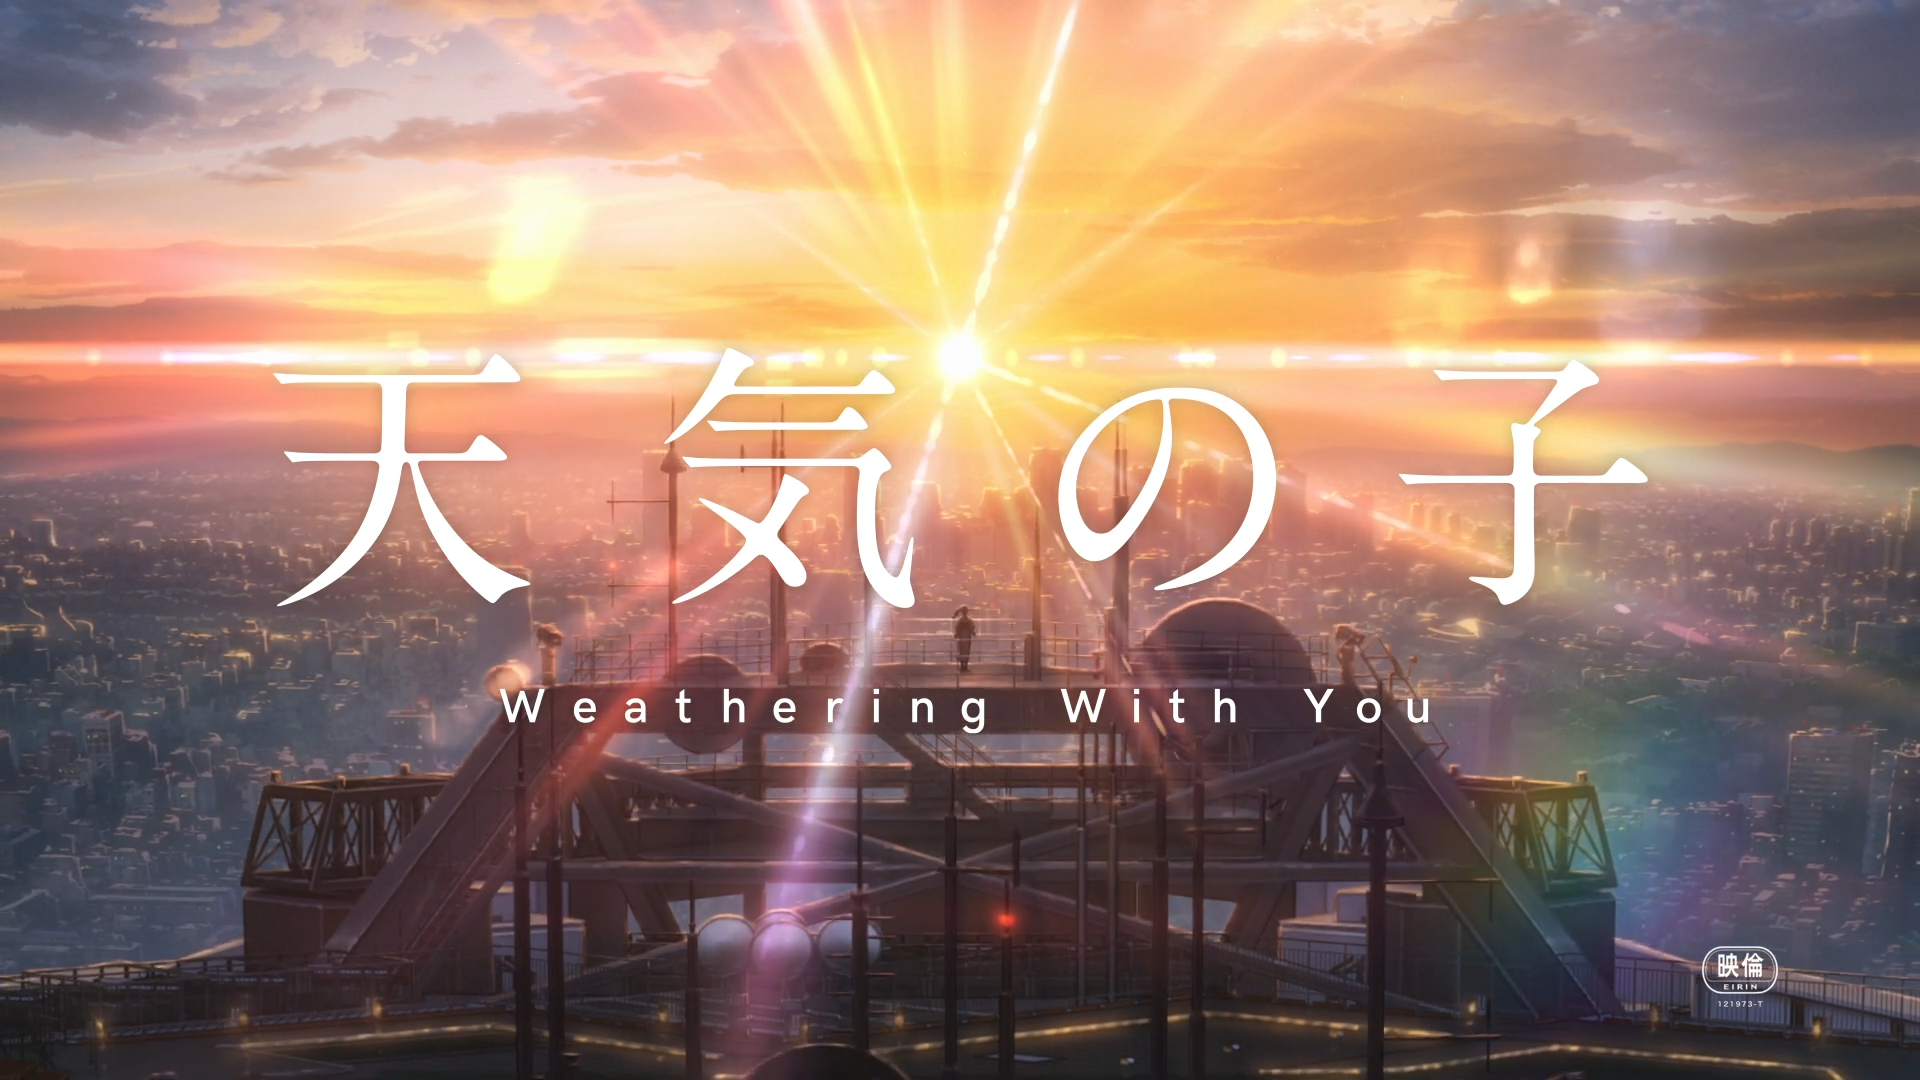 Weathering With You A Bittersweet Coming Of Age Love Story By Benny Ong Medium